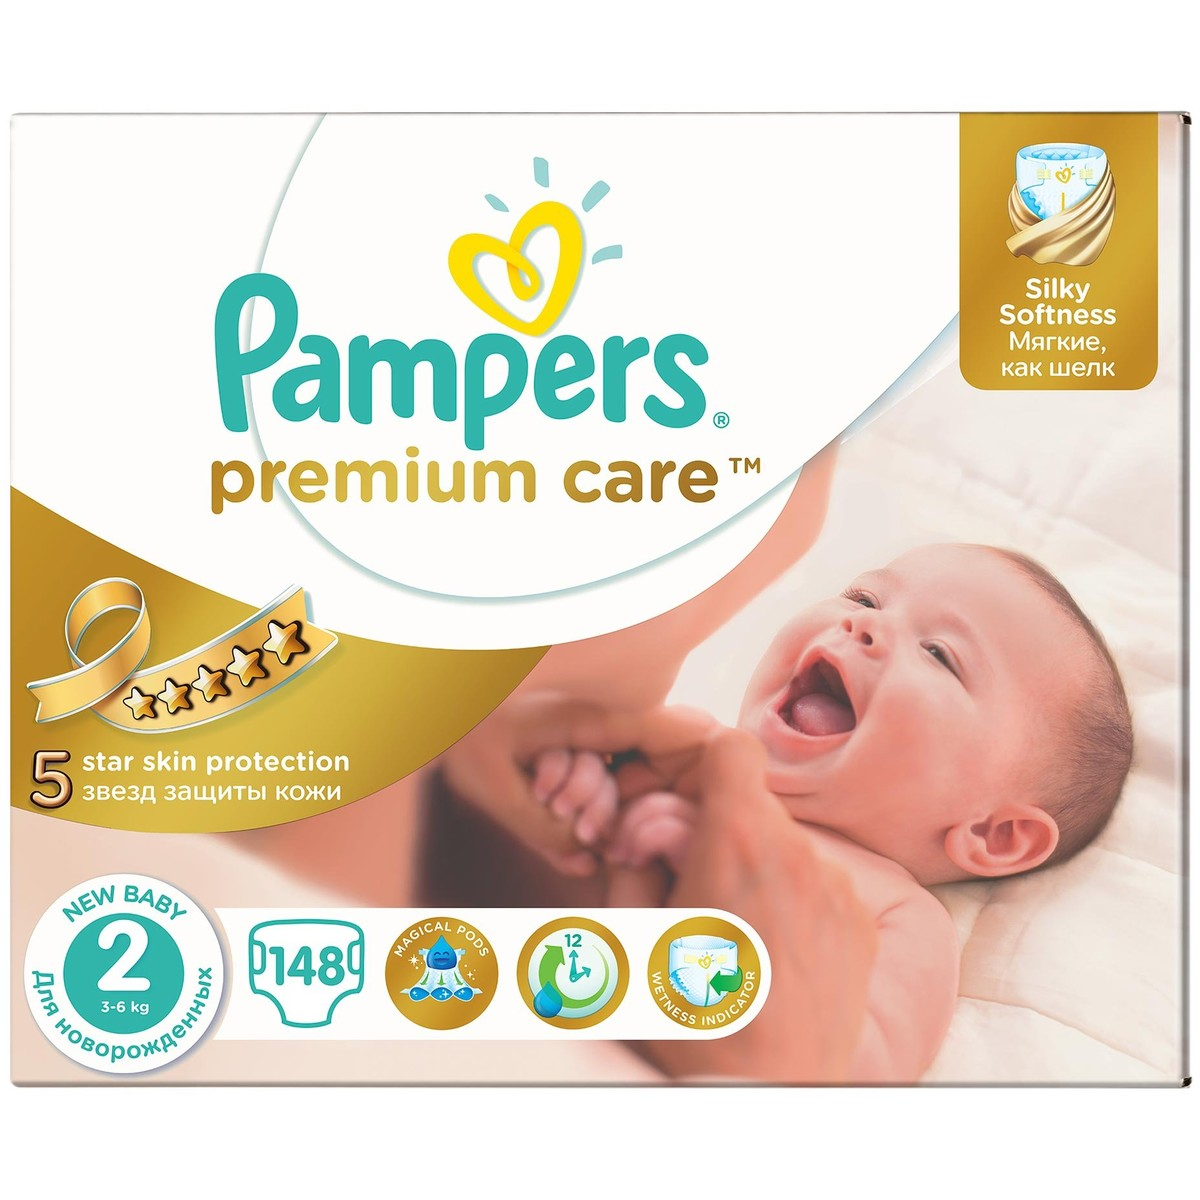 Scutece Pampers Premium Care 2 81553052 , New Baby Mega Box, 148 buc, 3-6 kg